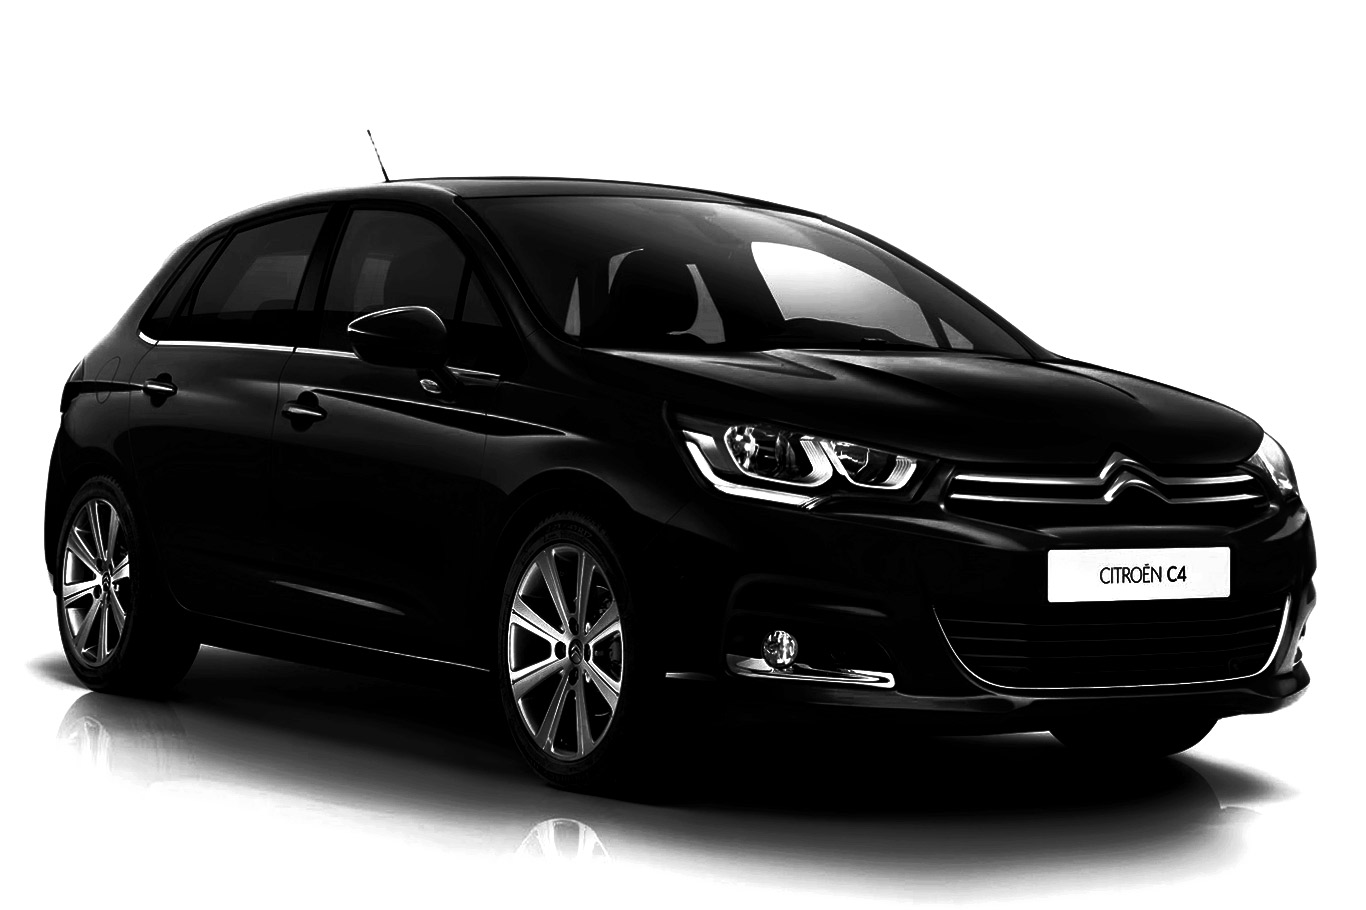 citroen c4 rent a car iznajmljivanje vozila u podgorici 3041662 1468848540. Black Bedroom Furniture Sets. Home Design Ideas